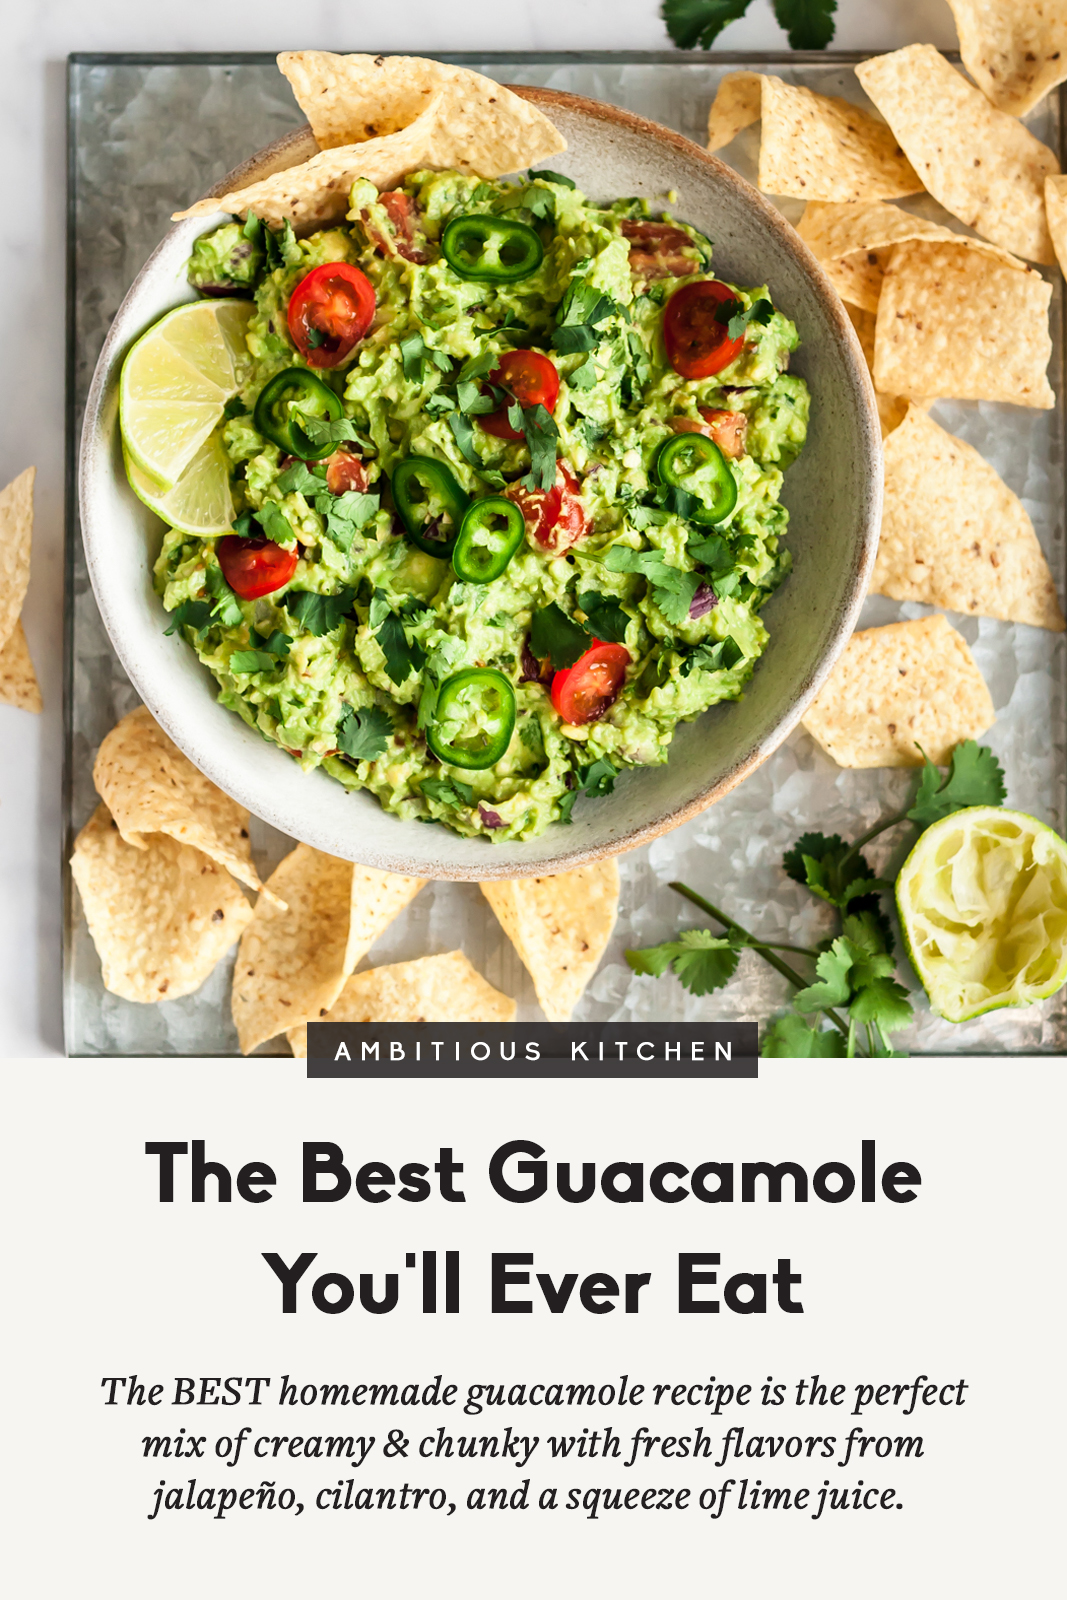 the best guacamole recipe in a bowl with chips on the side and text underneath